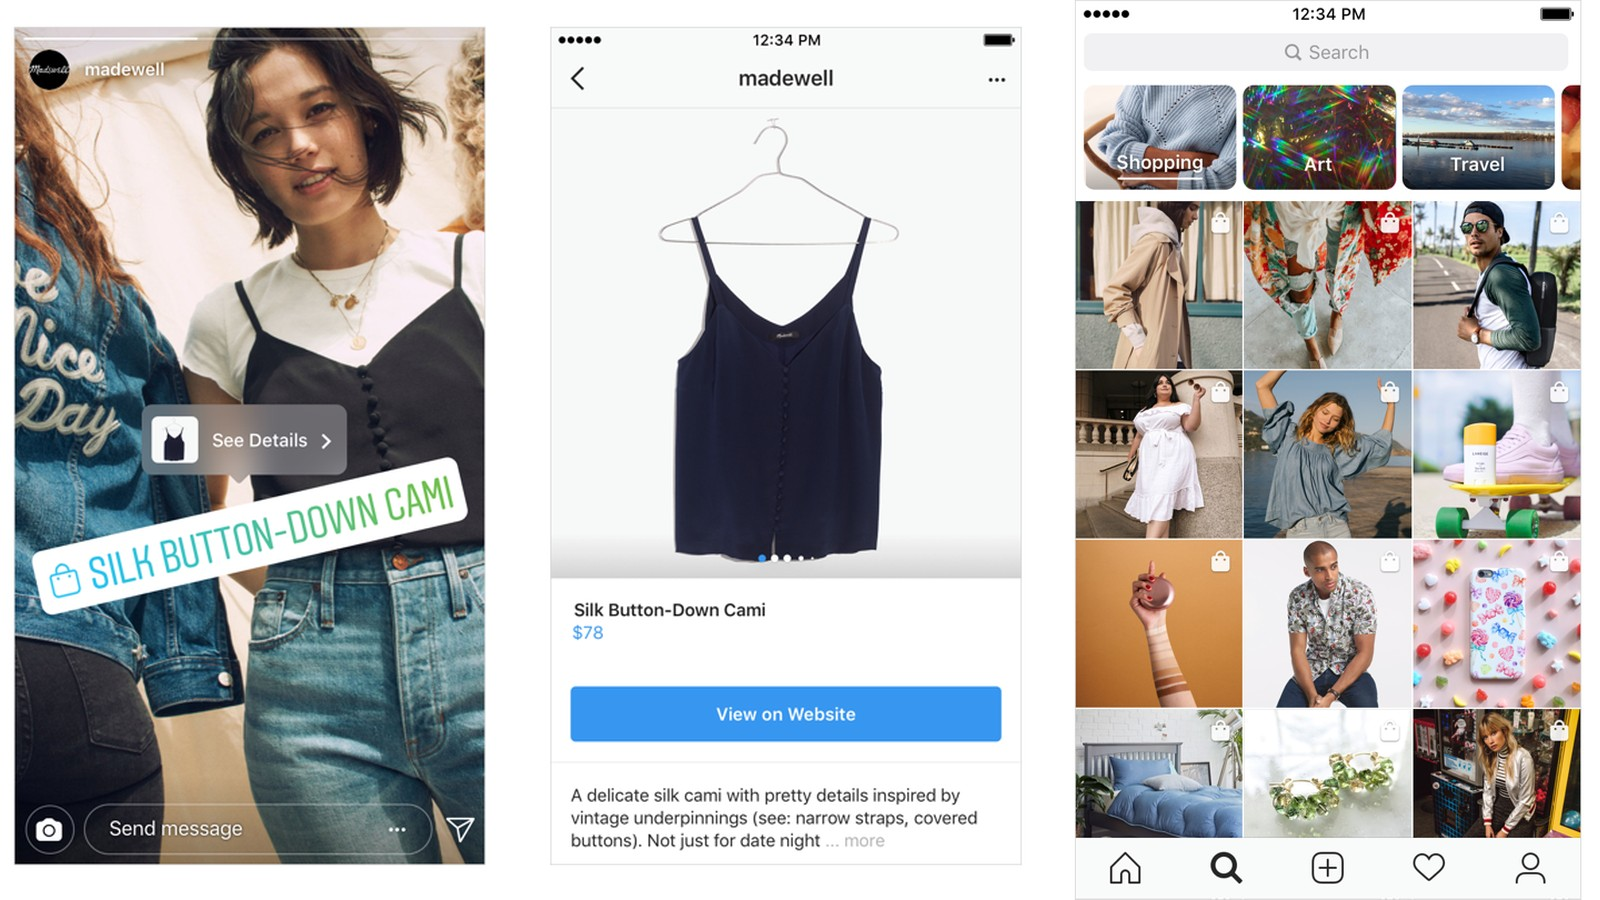 Instagram launches its new shopping experience on Insta Stories